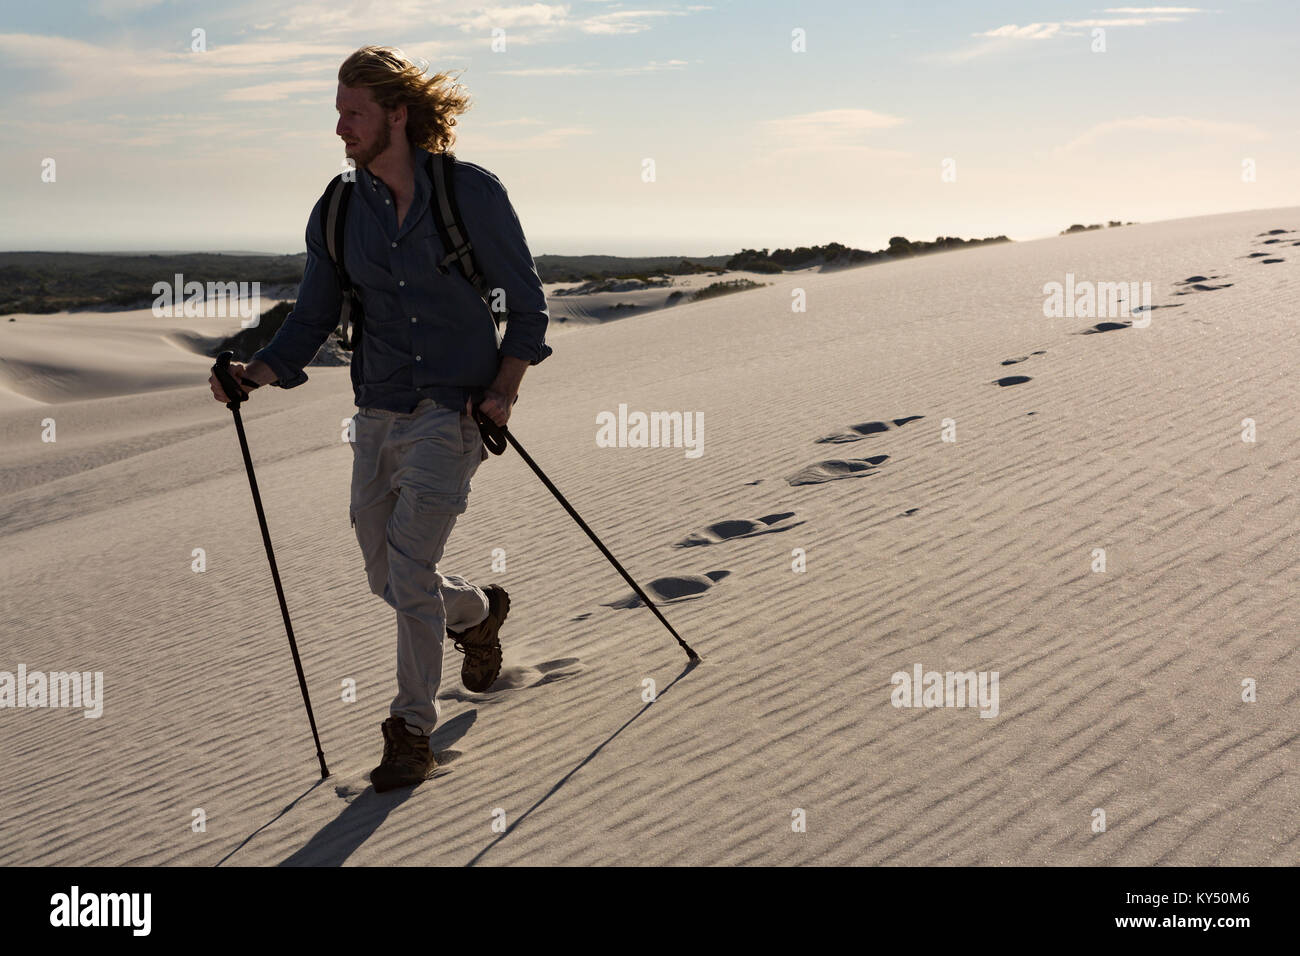 Hiker with trekking pole walking on sand - Stock Image